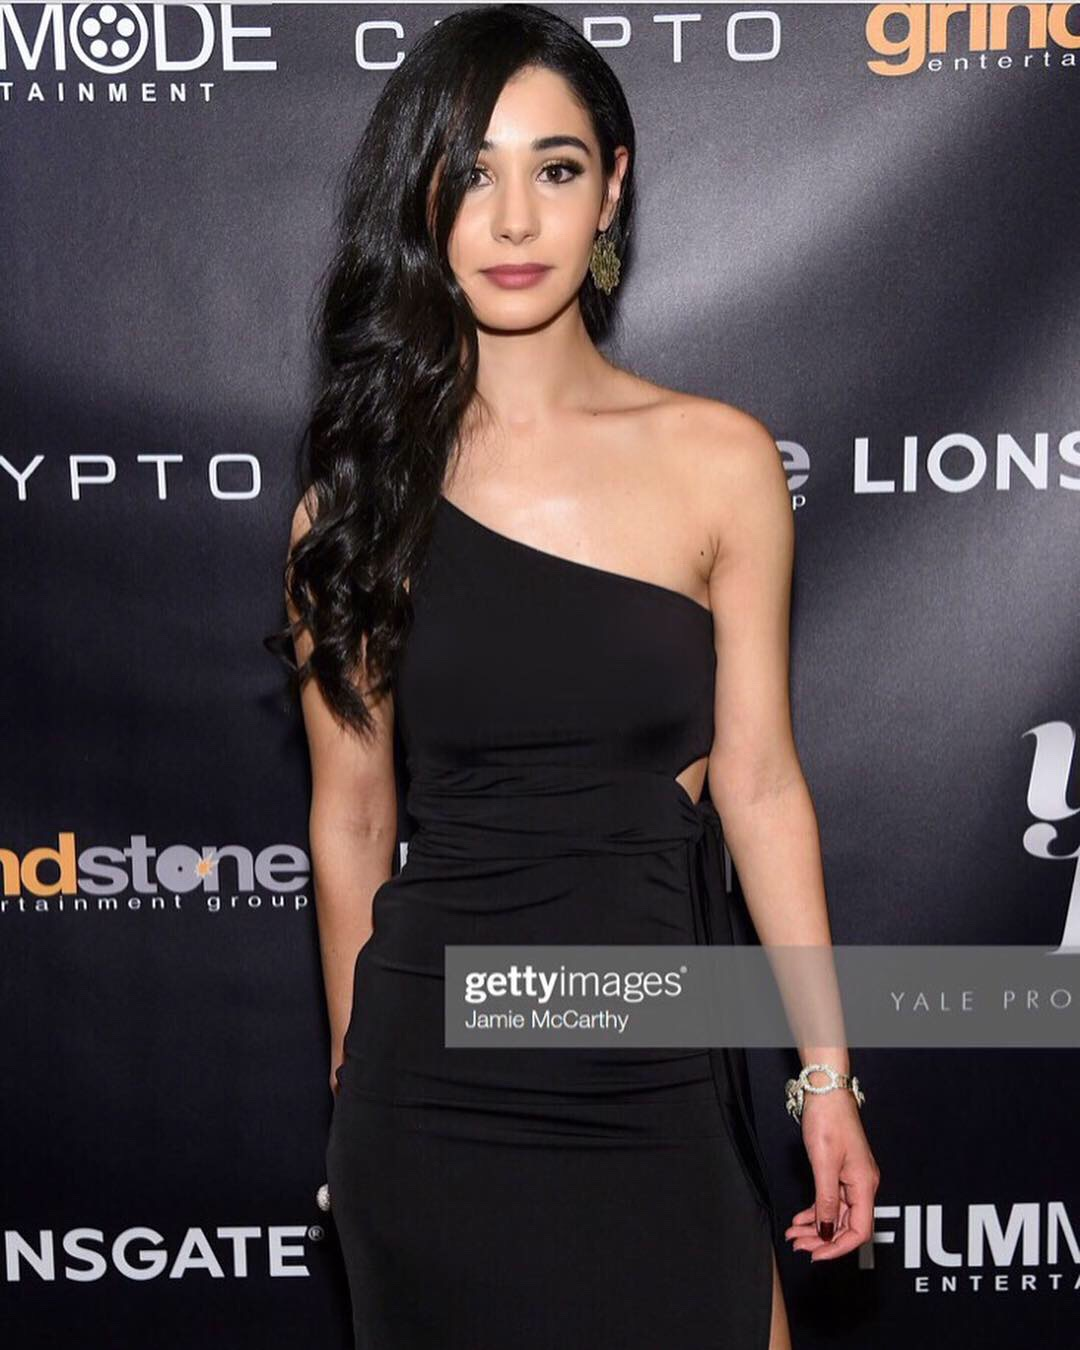 Alexandra Mazzucchelli Courtesy of Getty Images